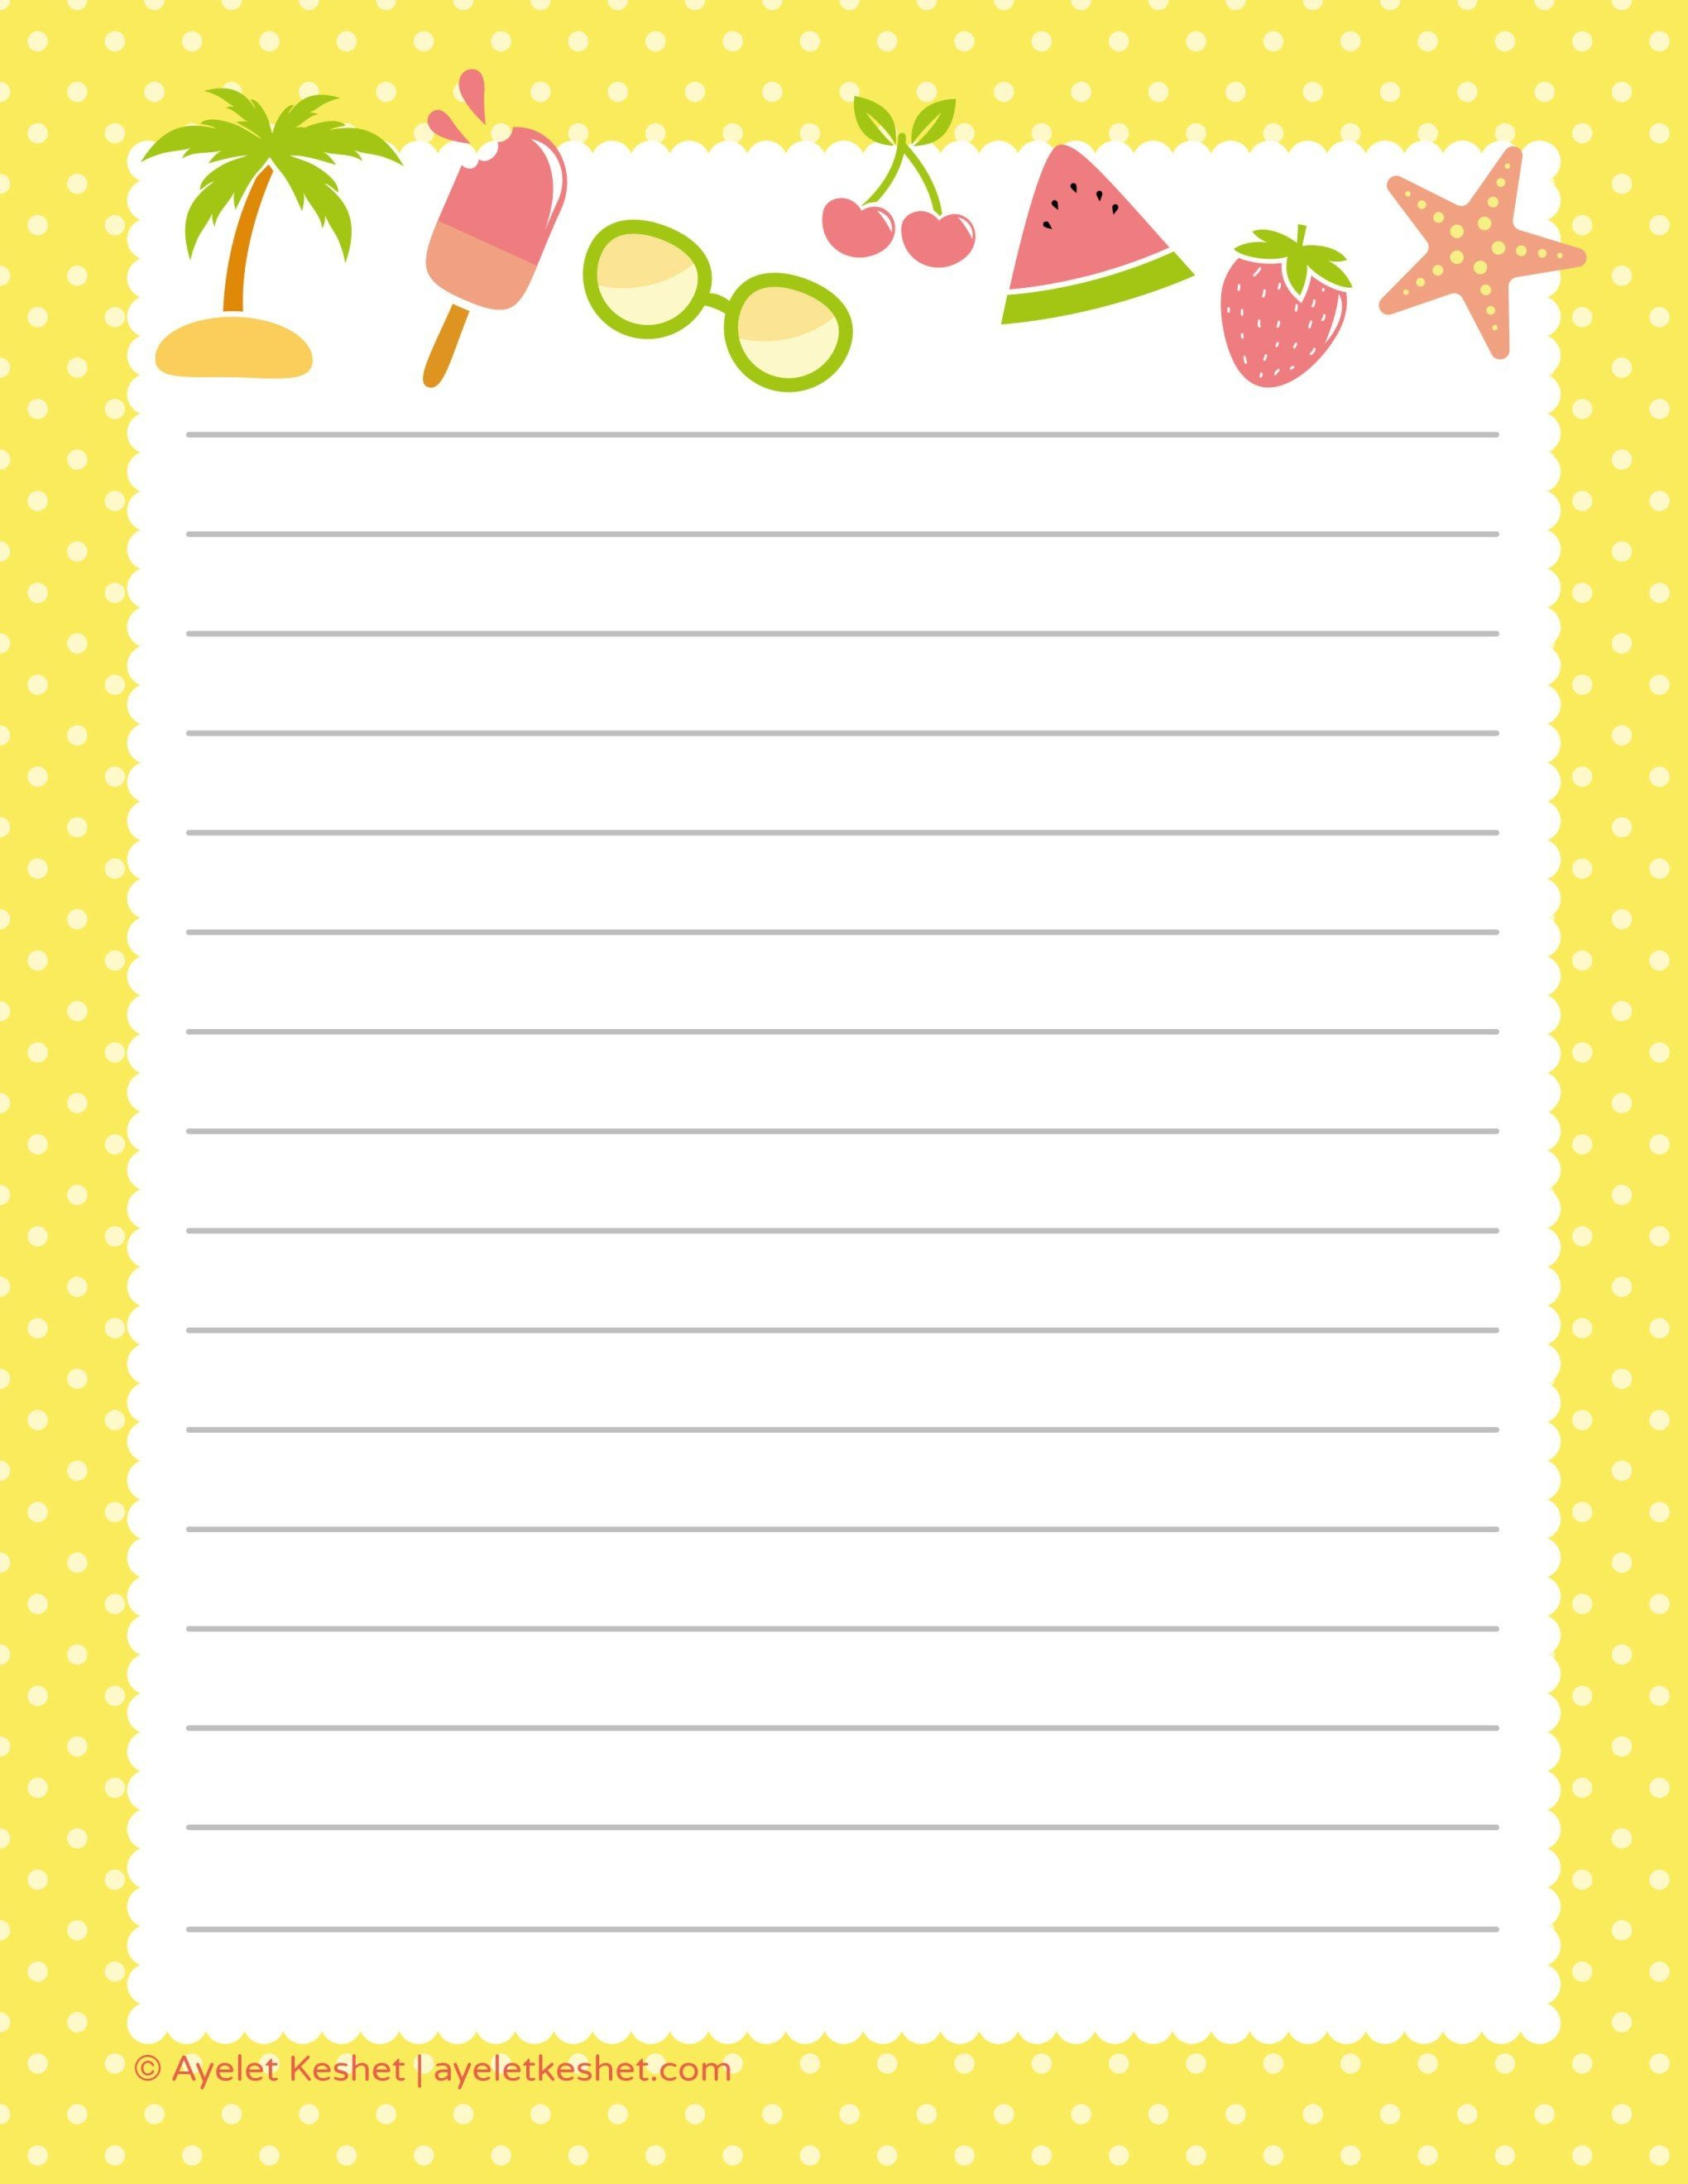 Free Printable Letter Paper   Printables To Go   Free Printable - Free Printable Stationary